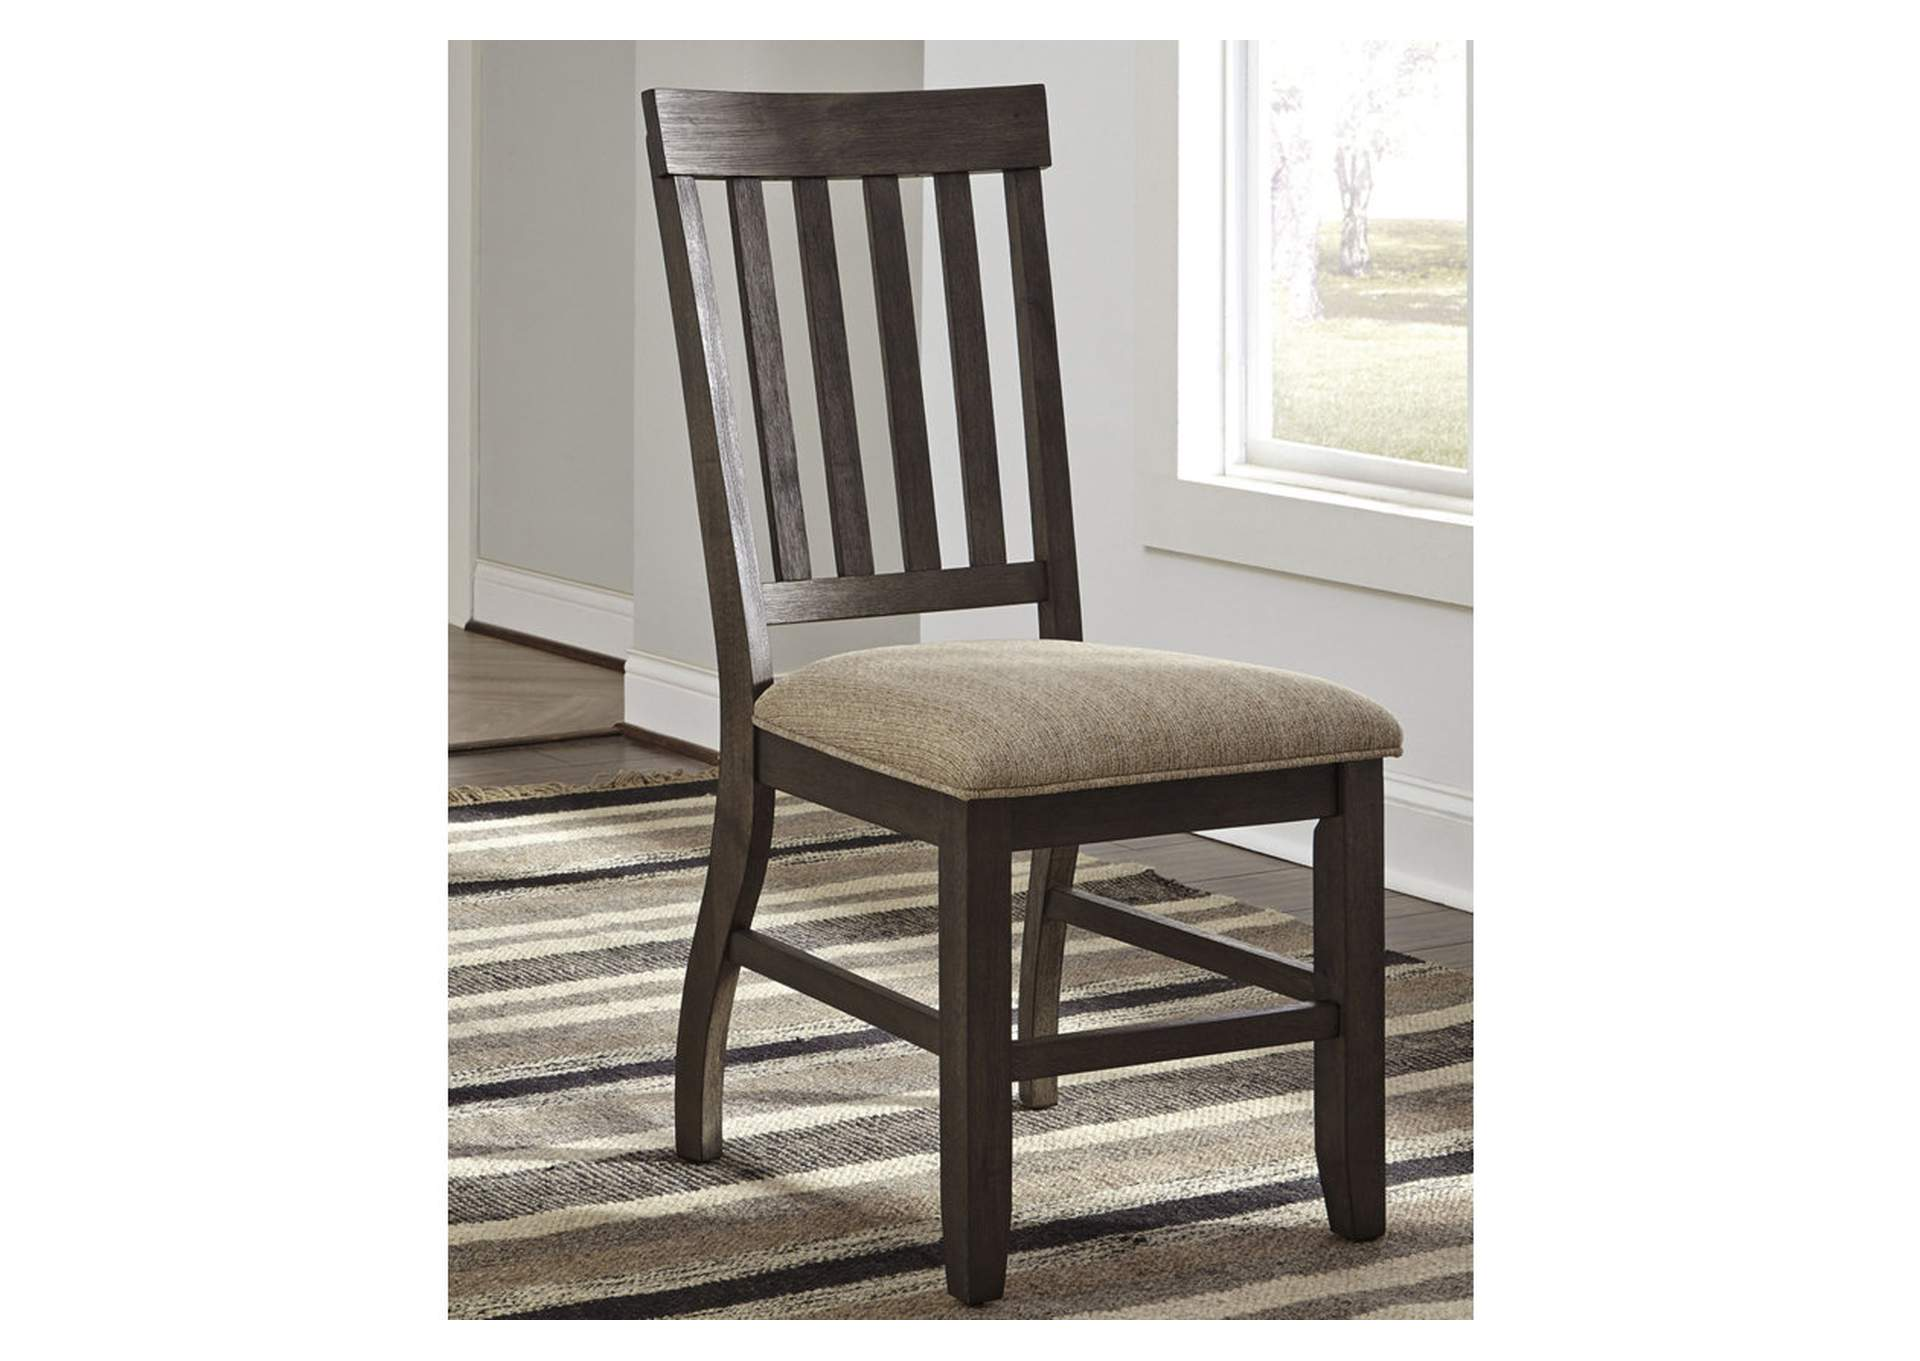 Dresbar Grayish Brown Dining Upholstered Side Chair (Set of 2),Signature Design By Ashley